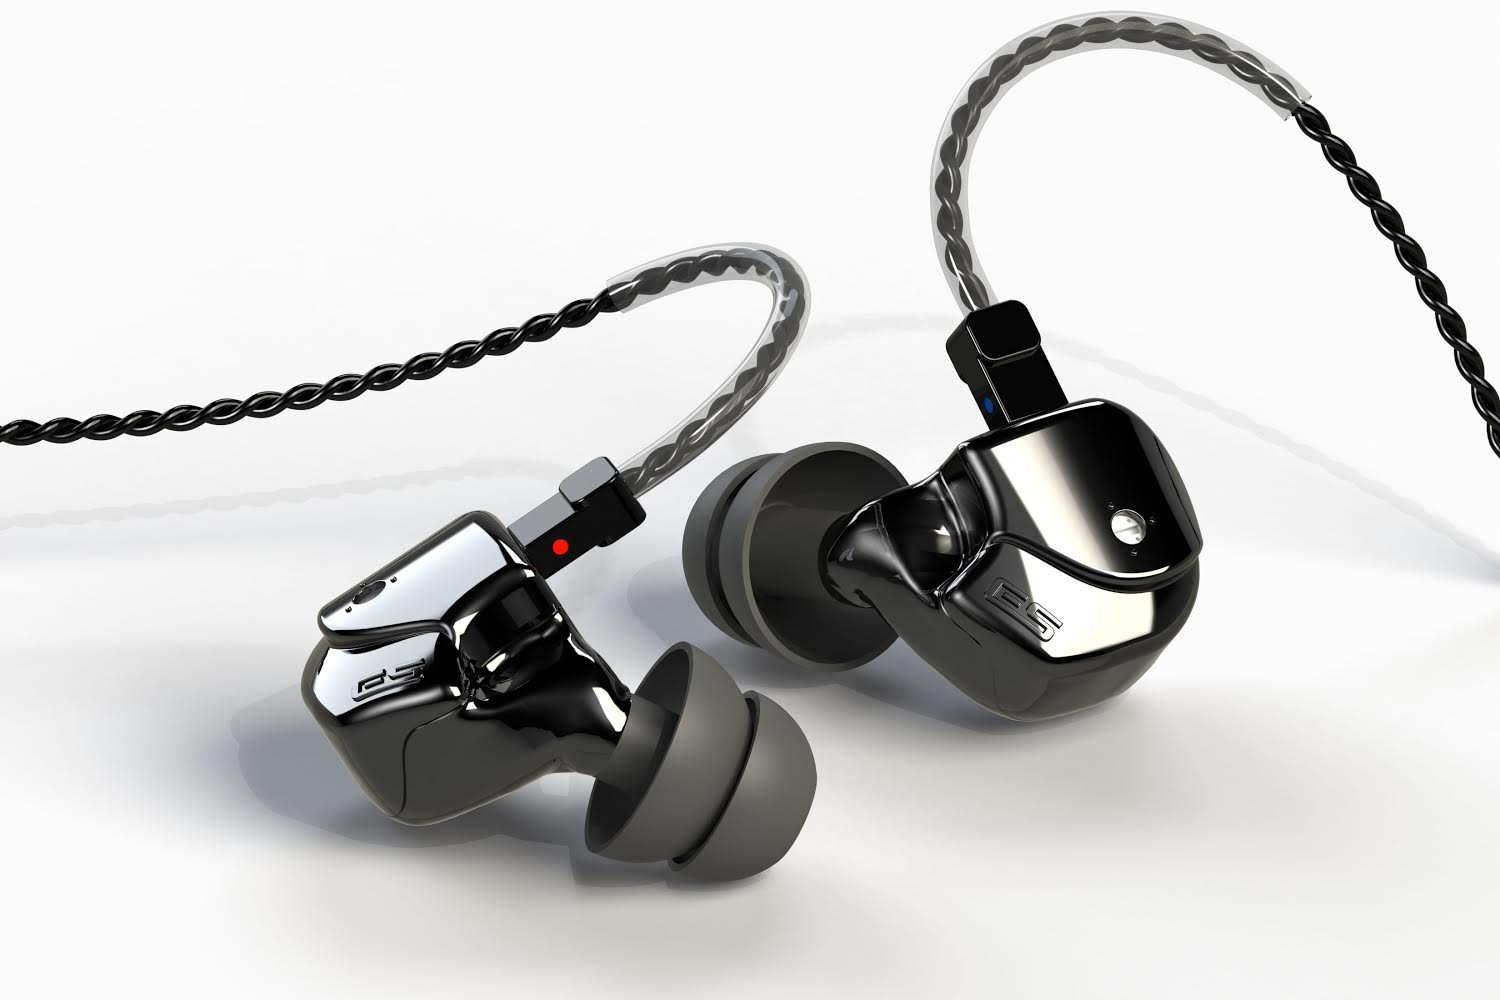 EarSonics Velvet universal custom in-ear monitors with sound tuning